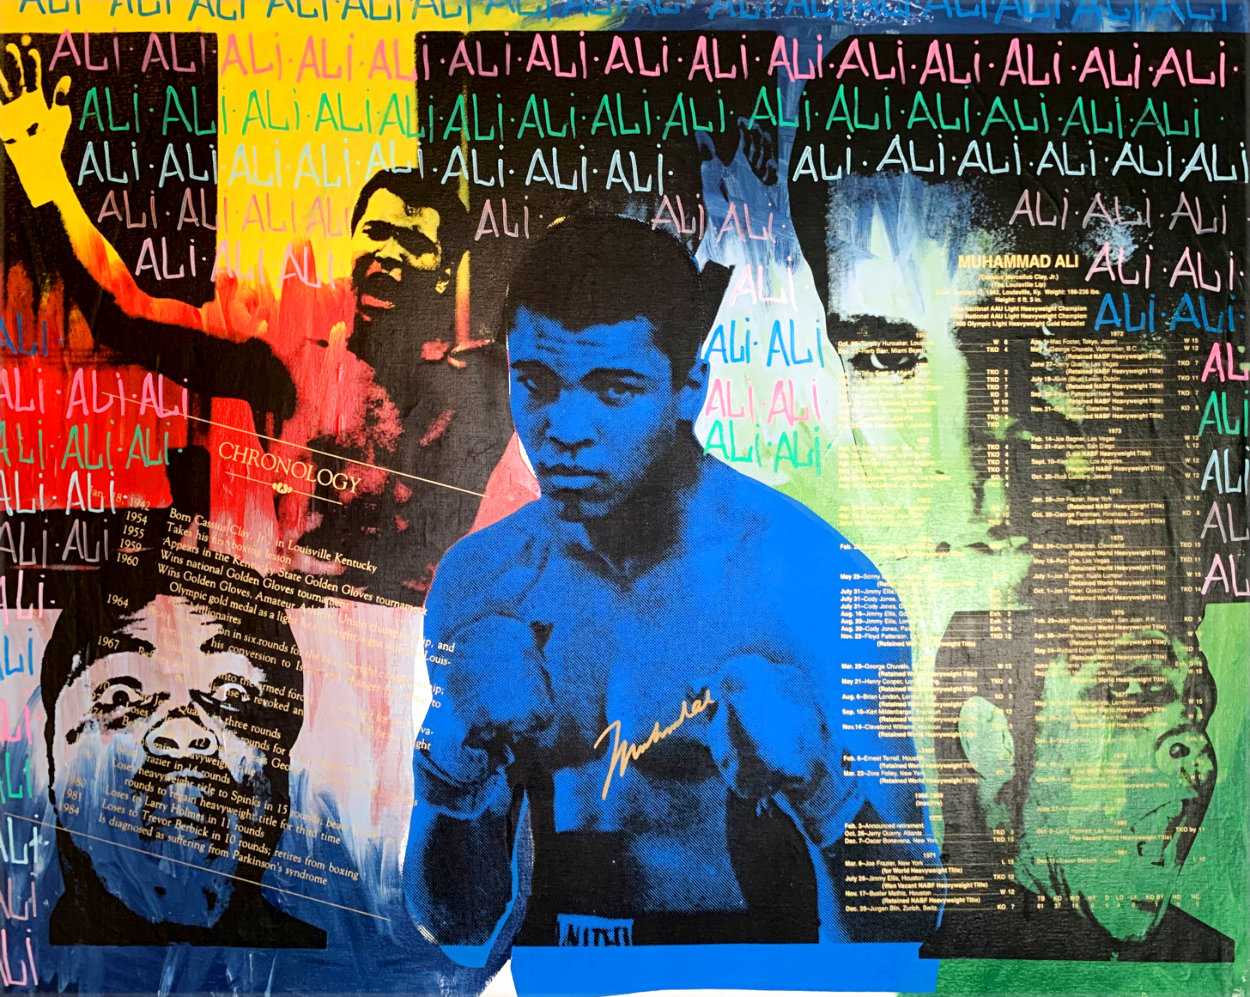 Ali Olympic the Greatest 1995 Embellished Canvas HS by Ali - Super Huge Limited Edition Print by Steve Kaufman